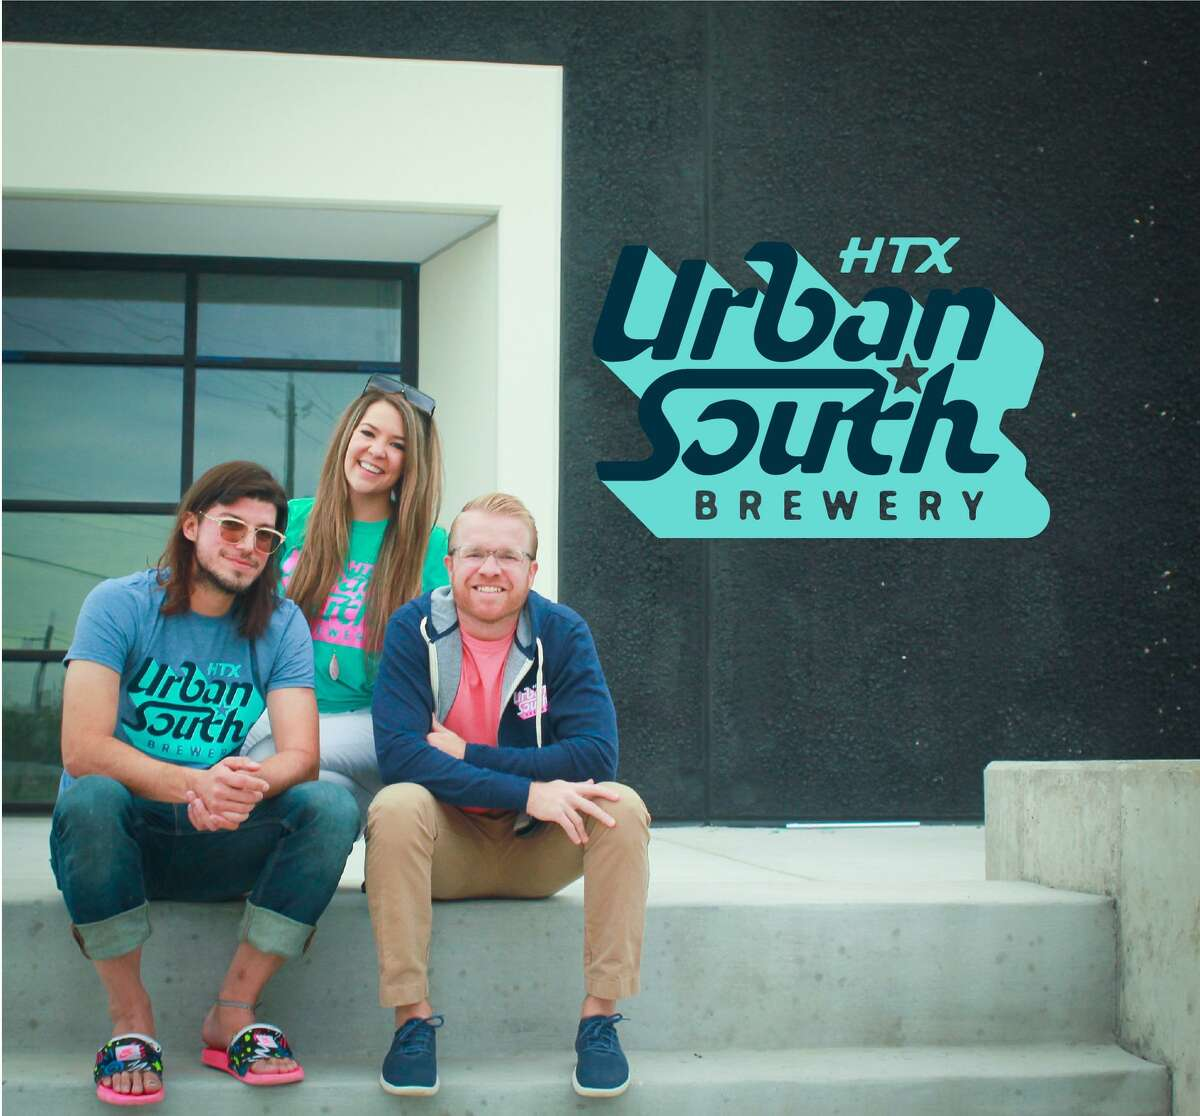 Justin (left) and Marin (center) Slanina and Dave Ohmer (right) make up the team leading the way at Urban South Brewery HTX in Sawyer Heights.